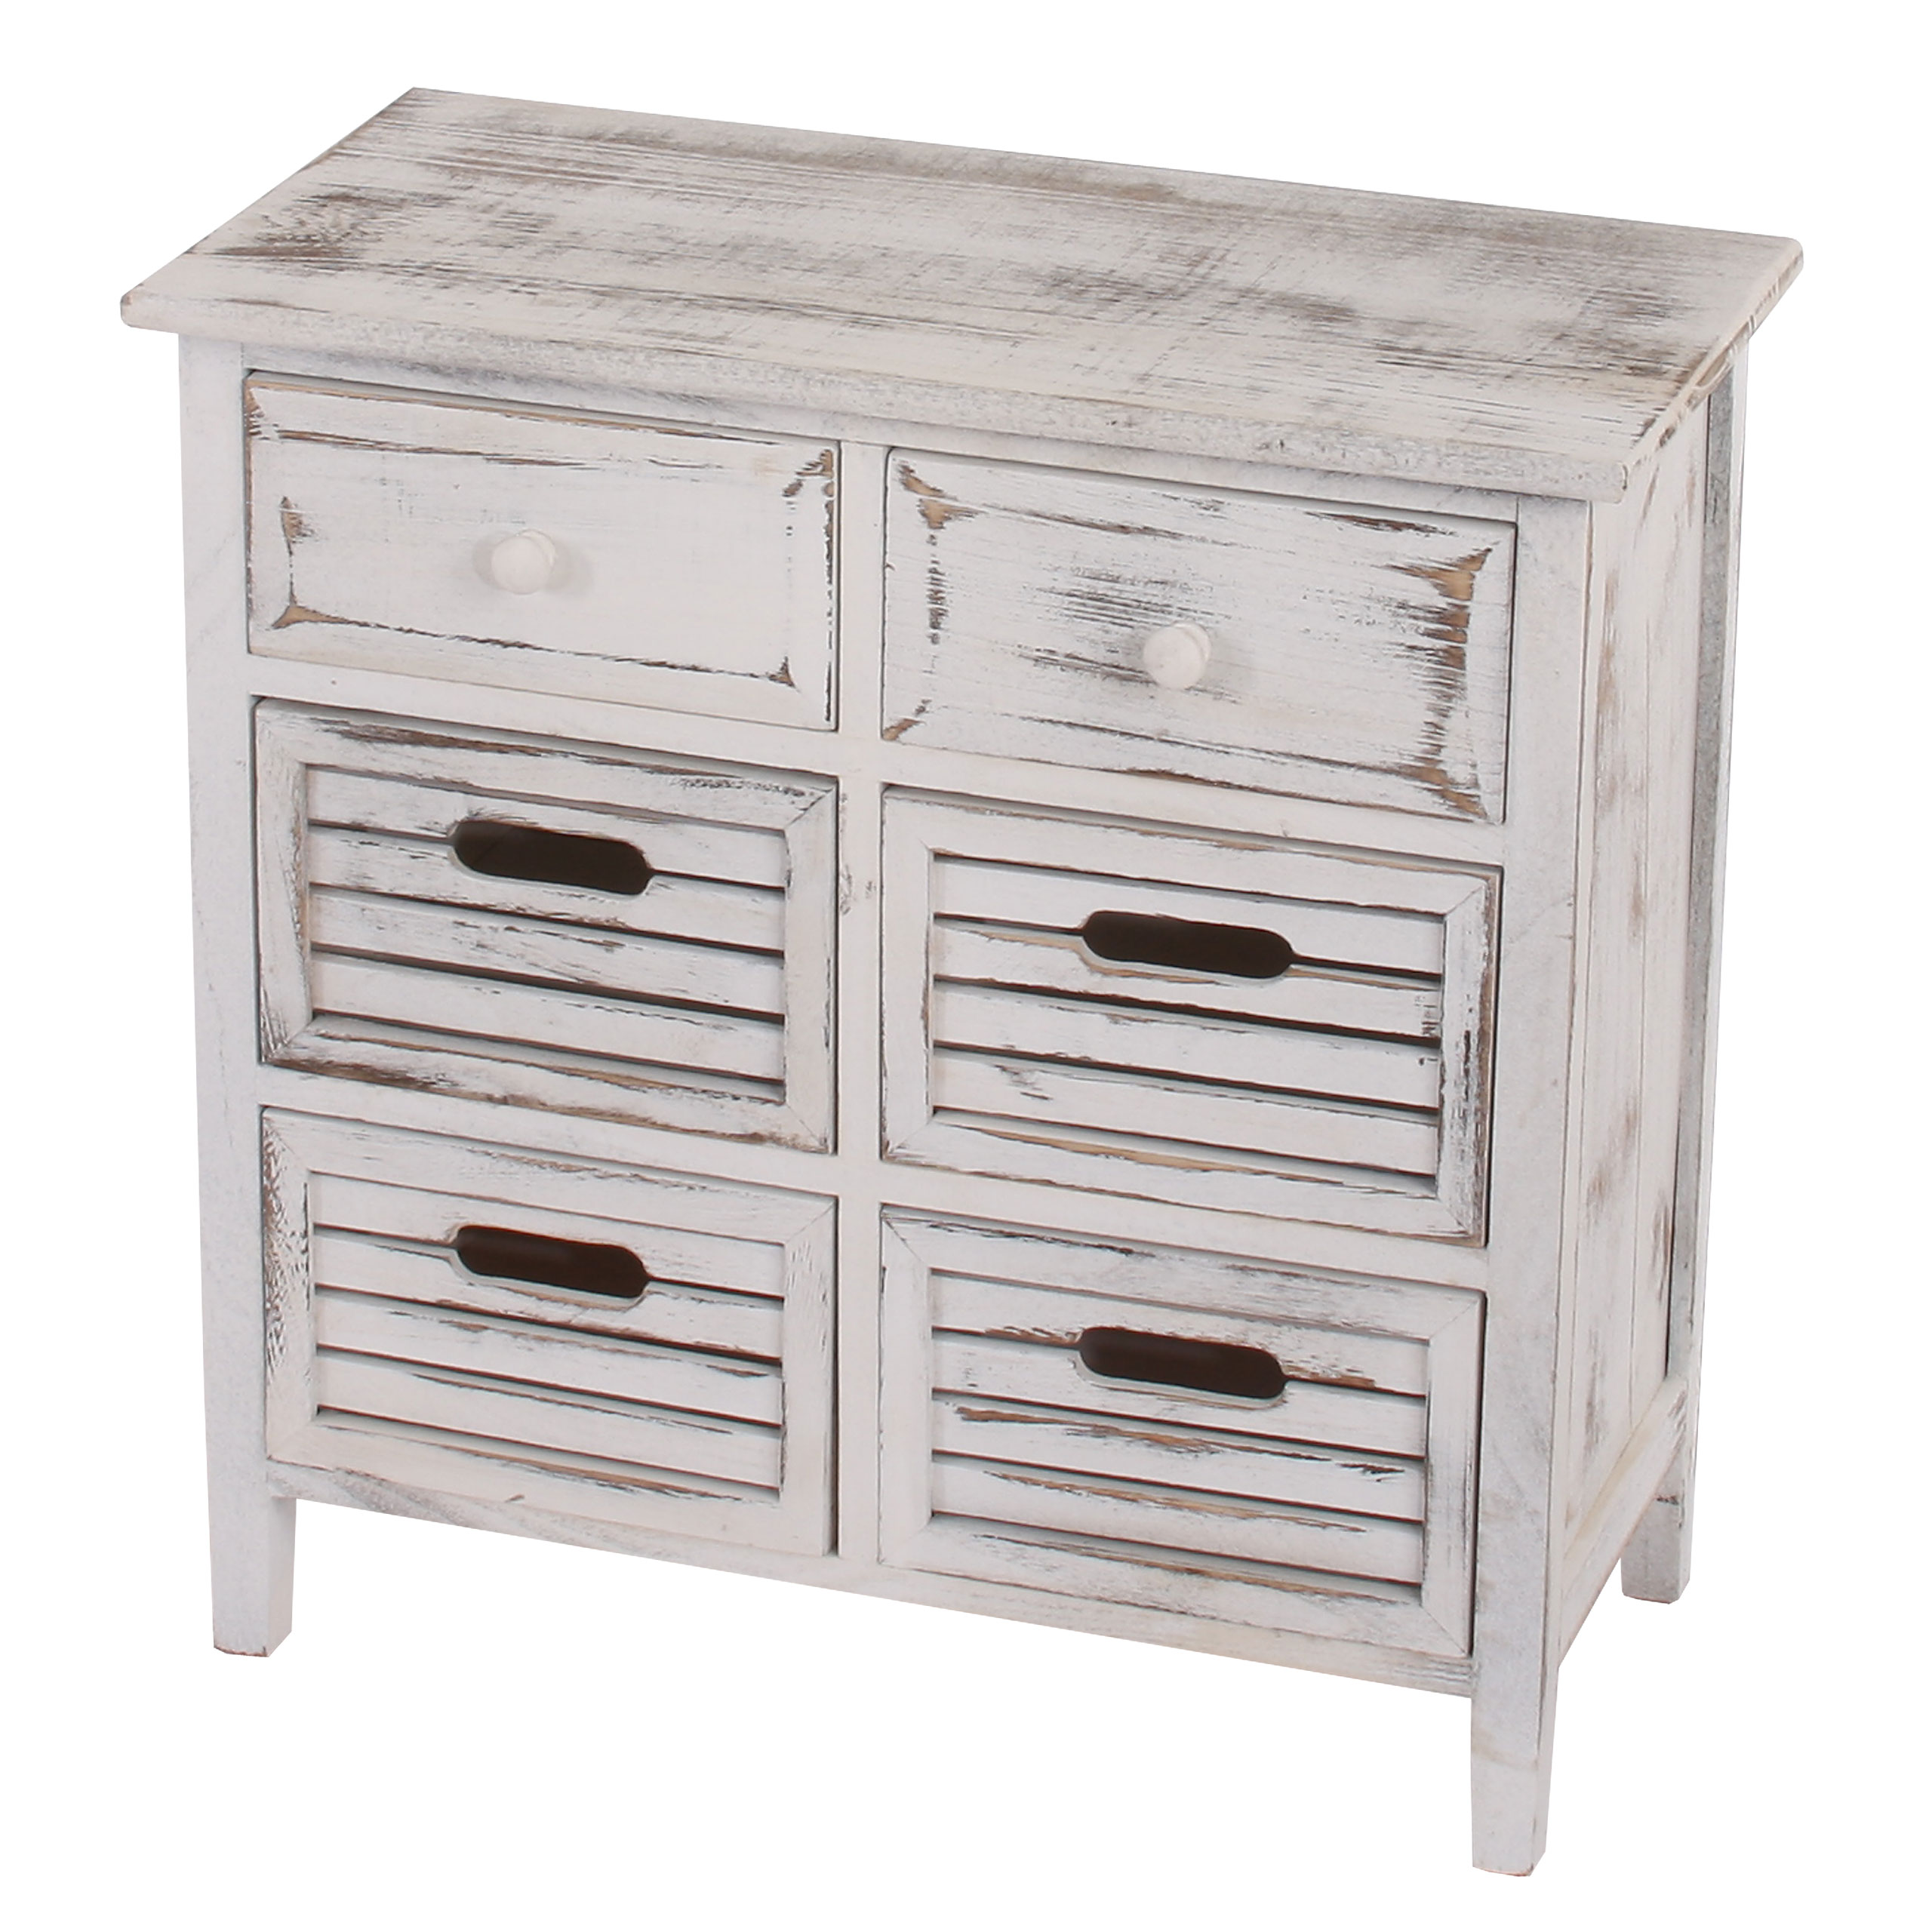 schrank kommode 60x60x30cm shabby look vintage wei braun ebay. Black Bedroom Furniture Sets. Home Design Ideas